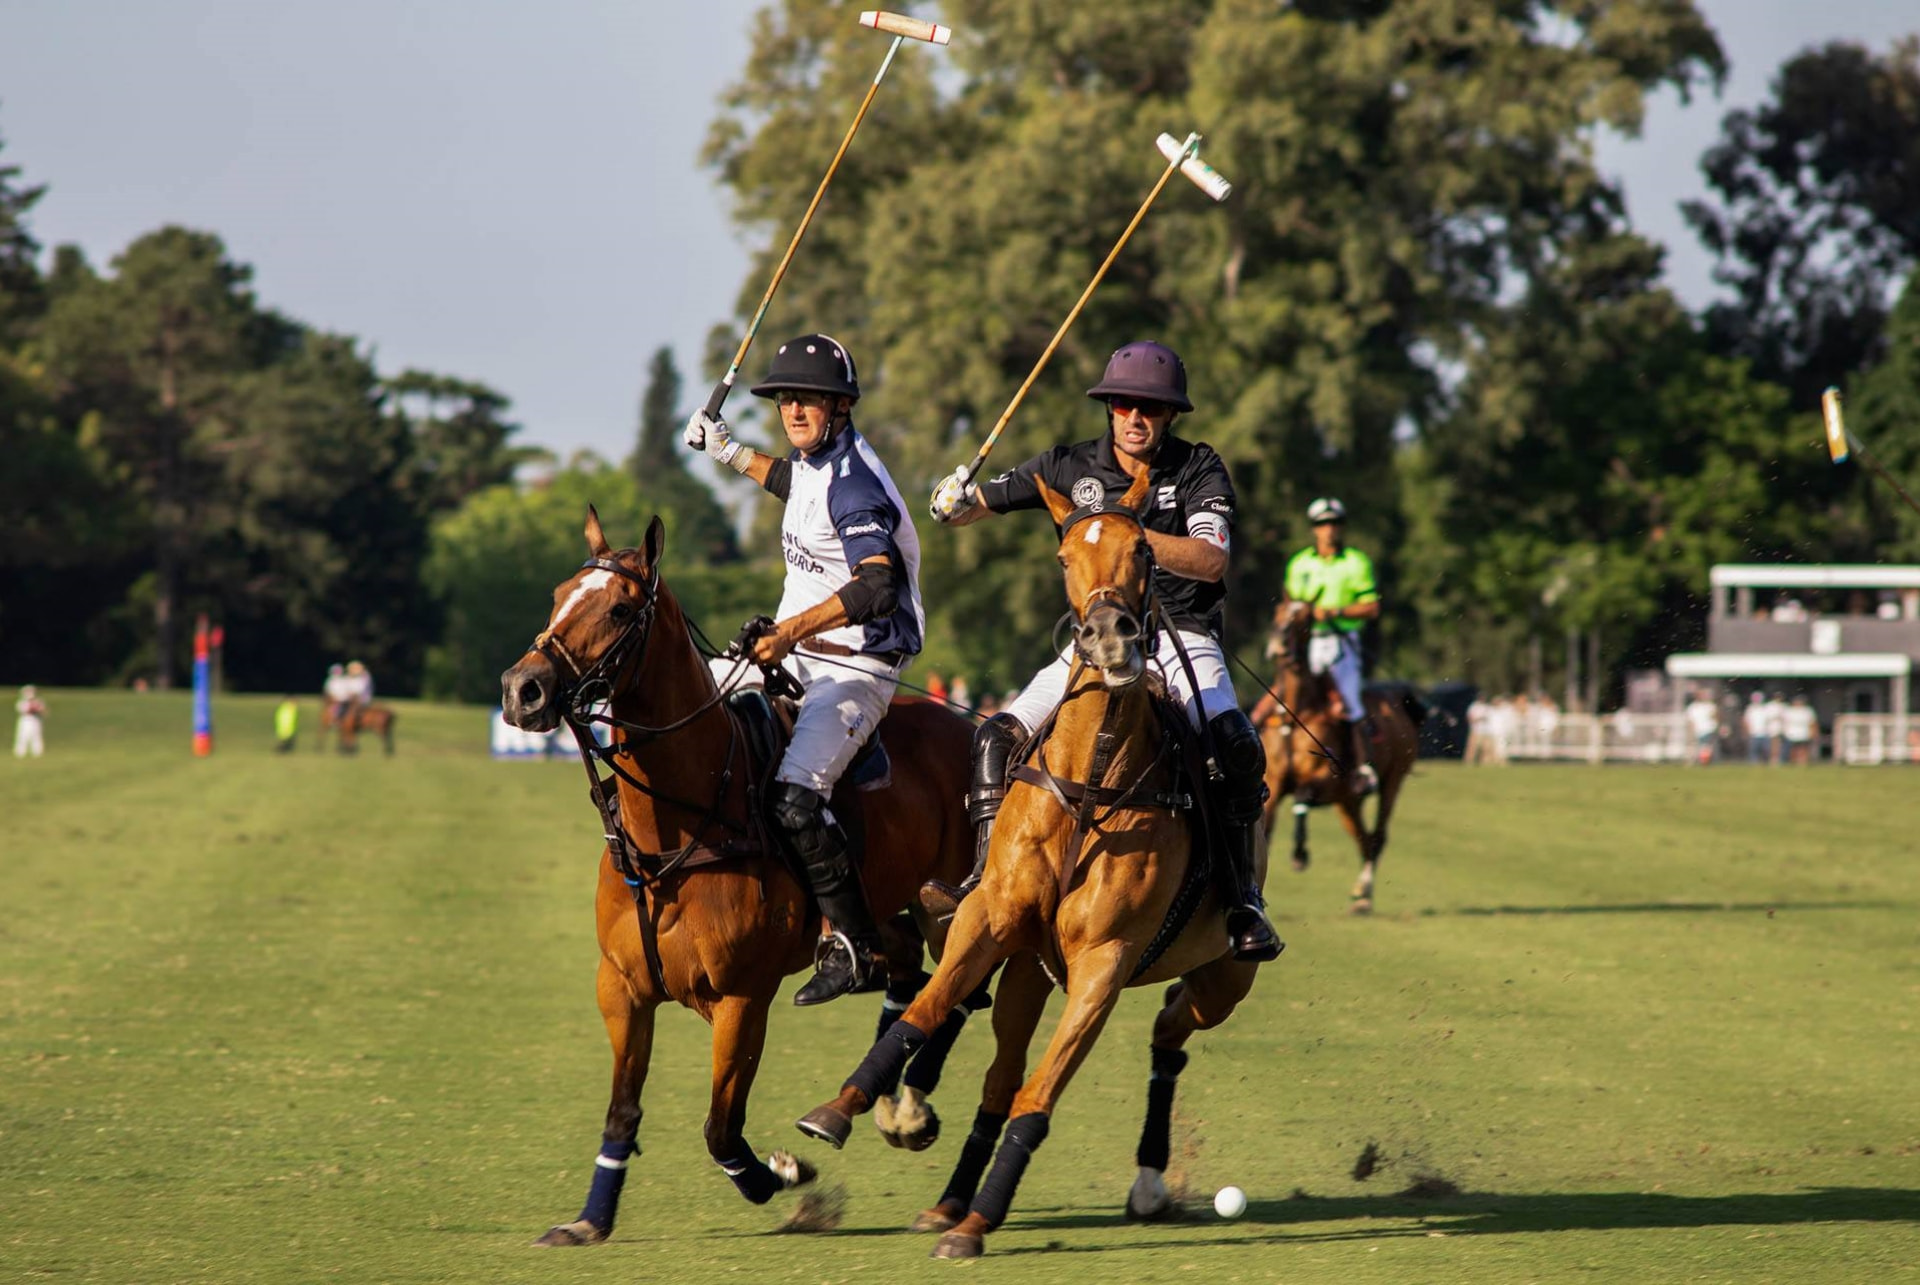 HPA announces new polo rules